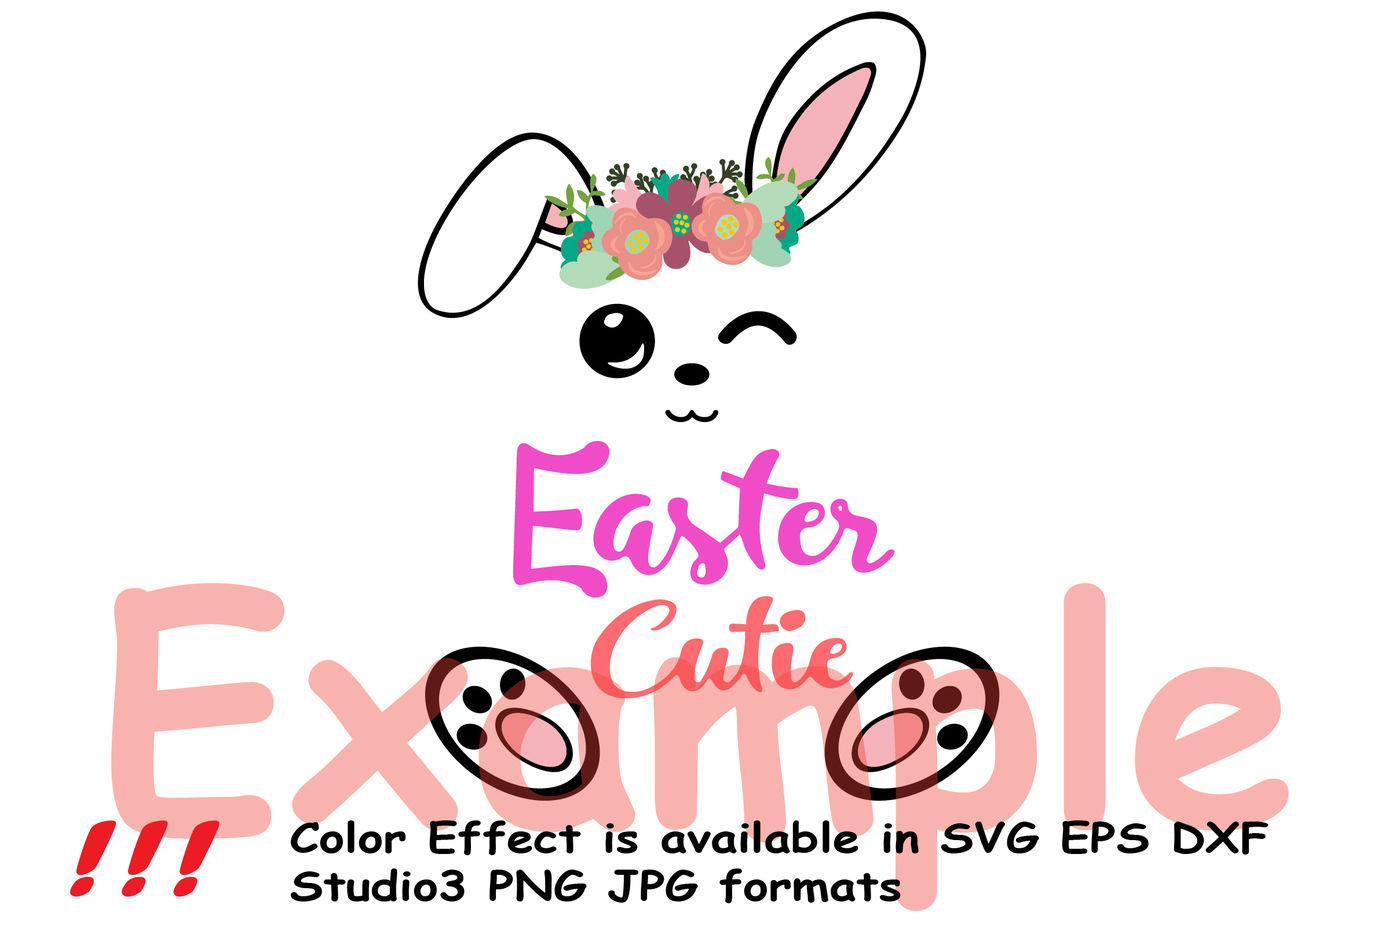 Easter Bunny Silhouette Glitter Rabbit Carrot Outline 758s By